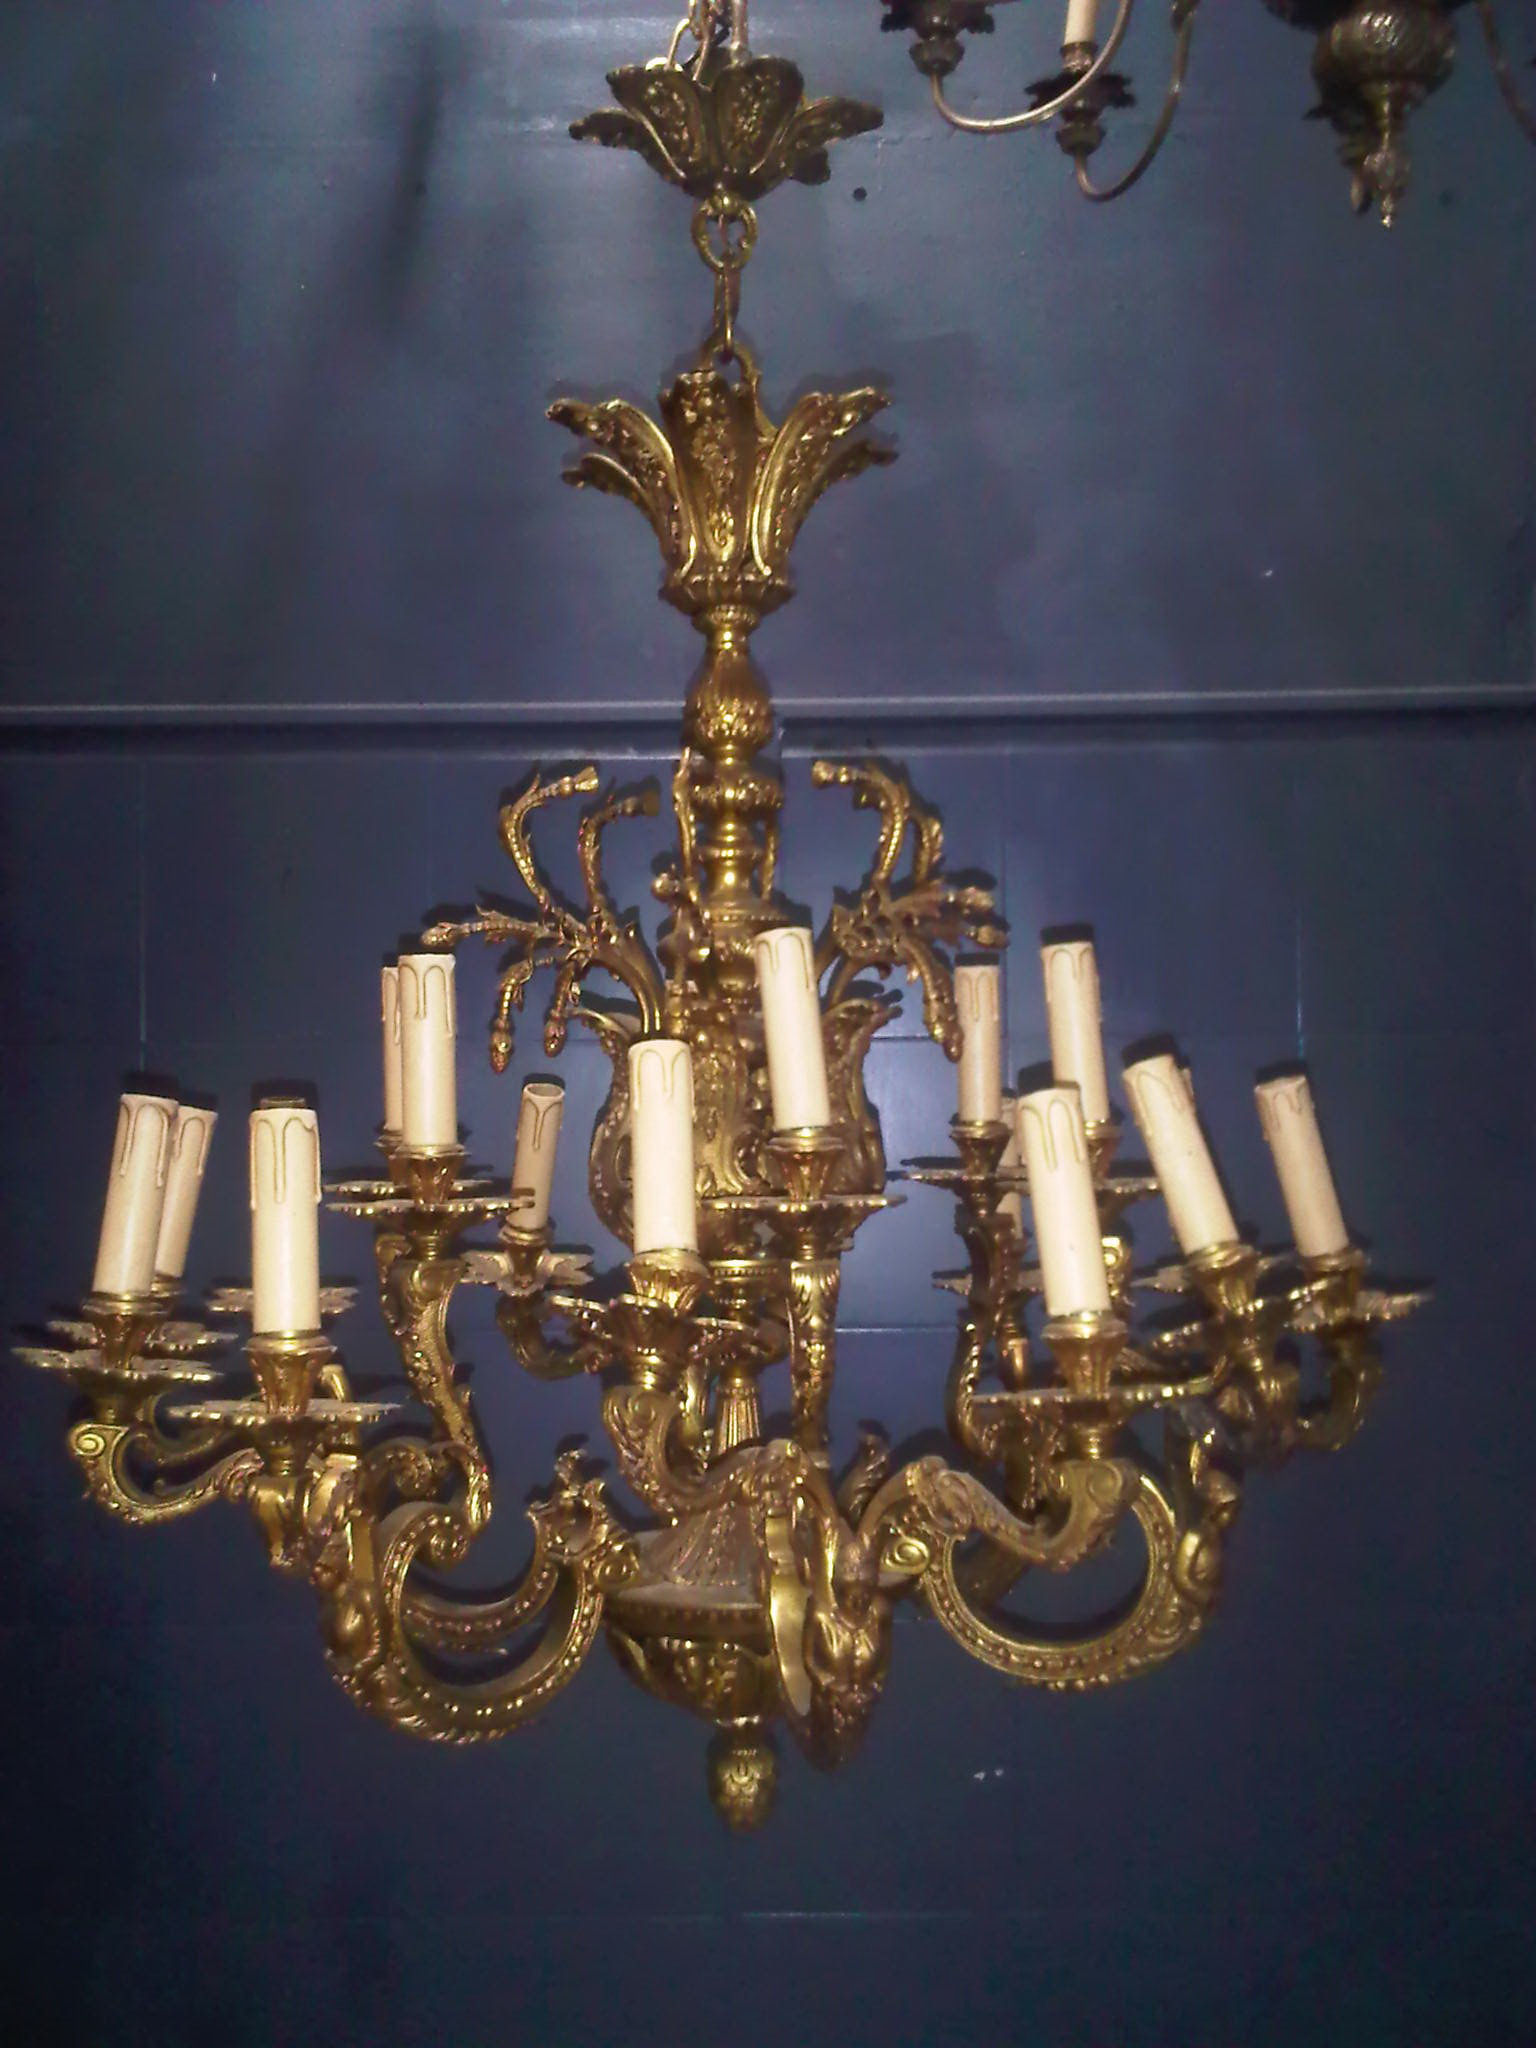 Antique Lamp code AT100G size wide 84 cm high 100 cm.